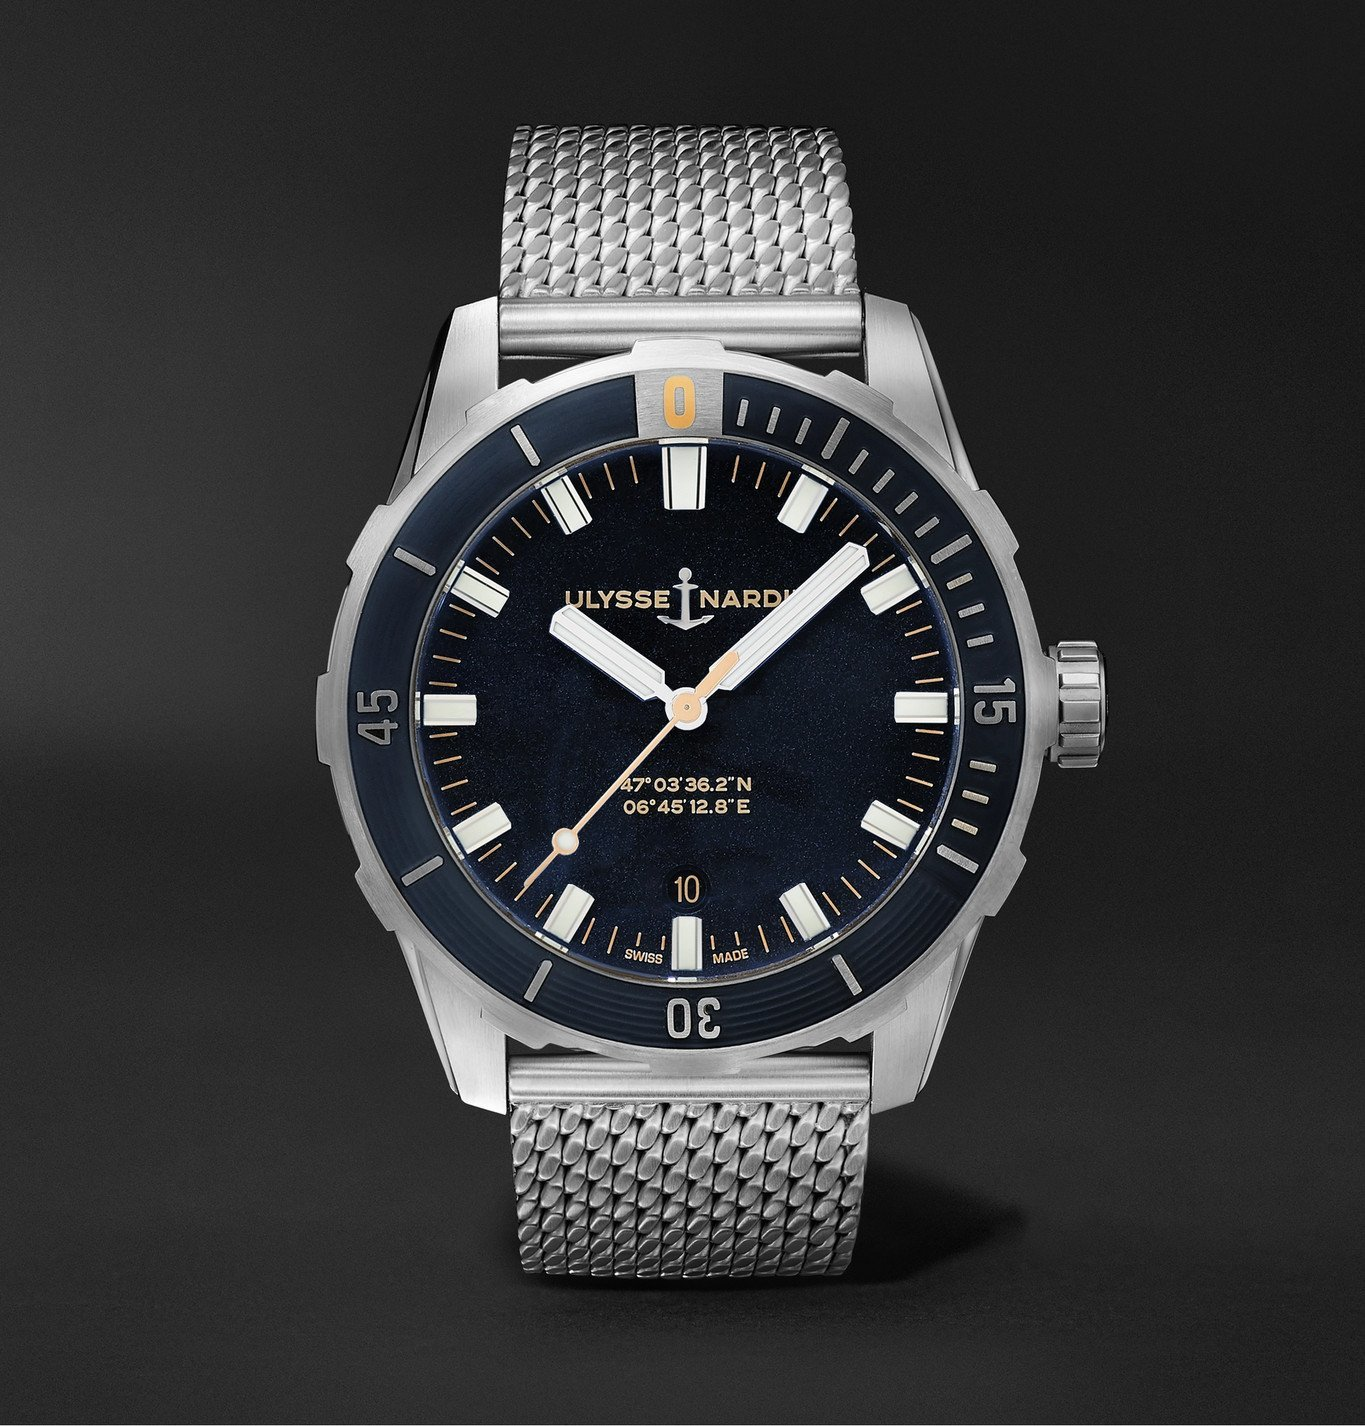 Photo: Ulysse Nardin - Diver Automatic 42mm Stainless Steel Watch, Ref. No. 8163-175-7M/92 - Blue